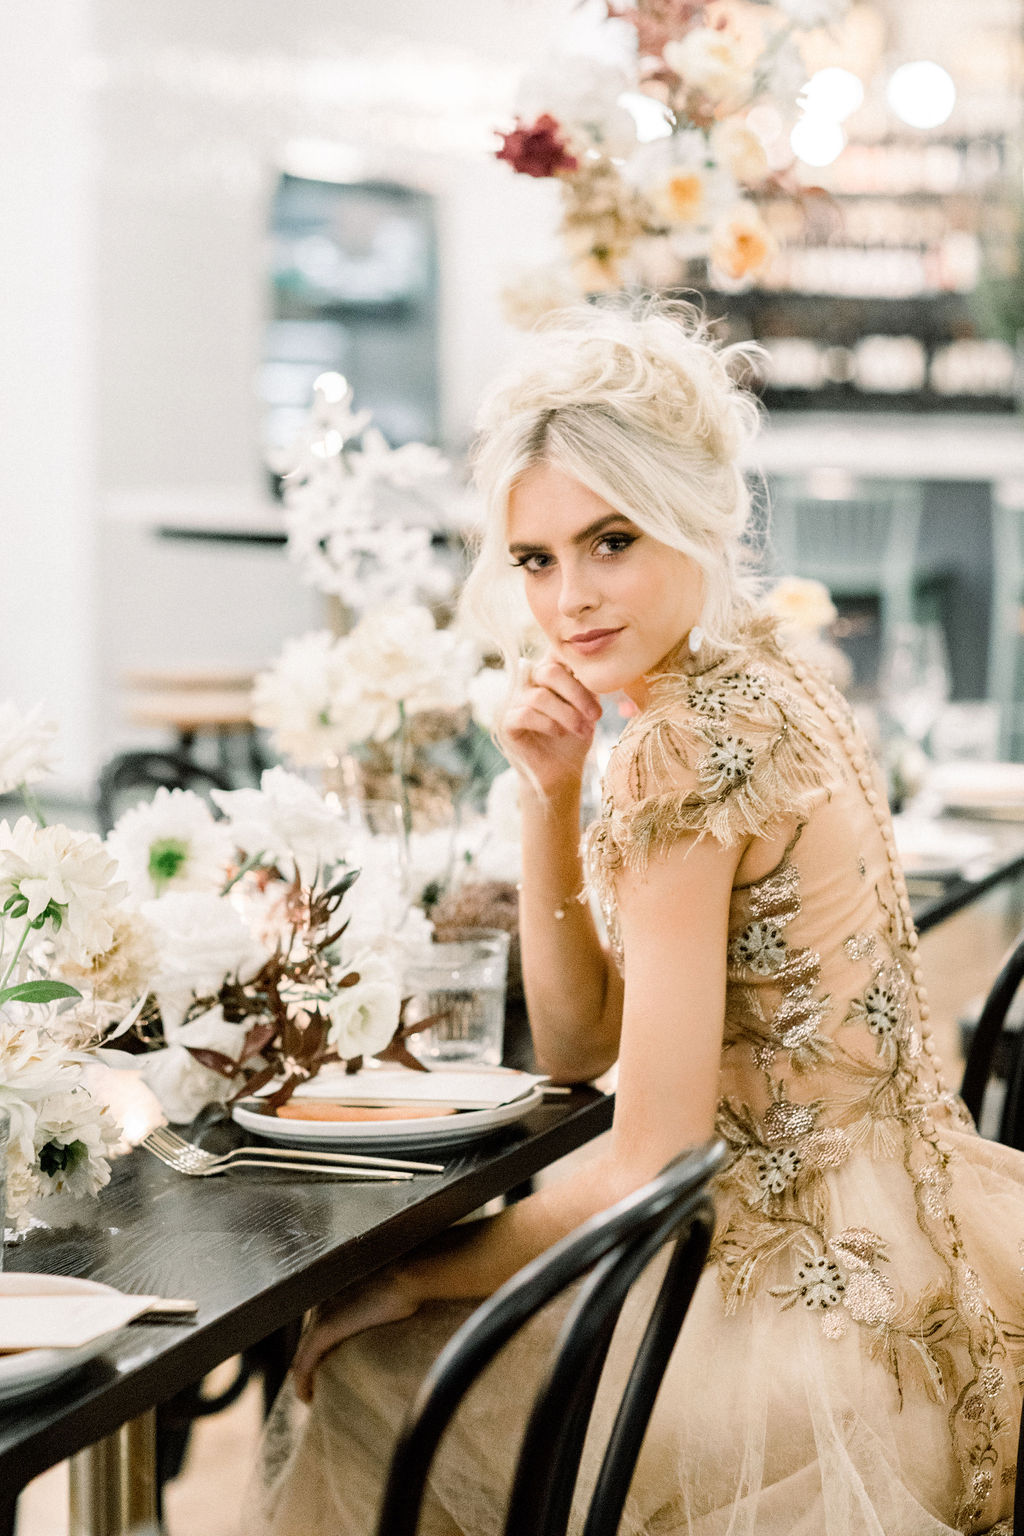 white+white weddings and events the wedding school styled shoot tablescape tablestyling wedding flowers isles lane bride gold wedding dress